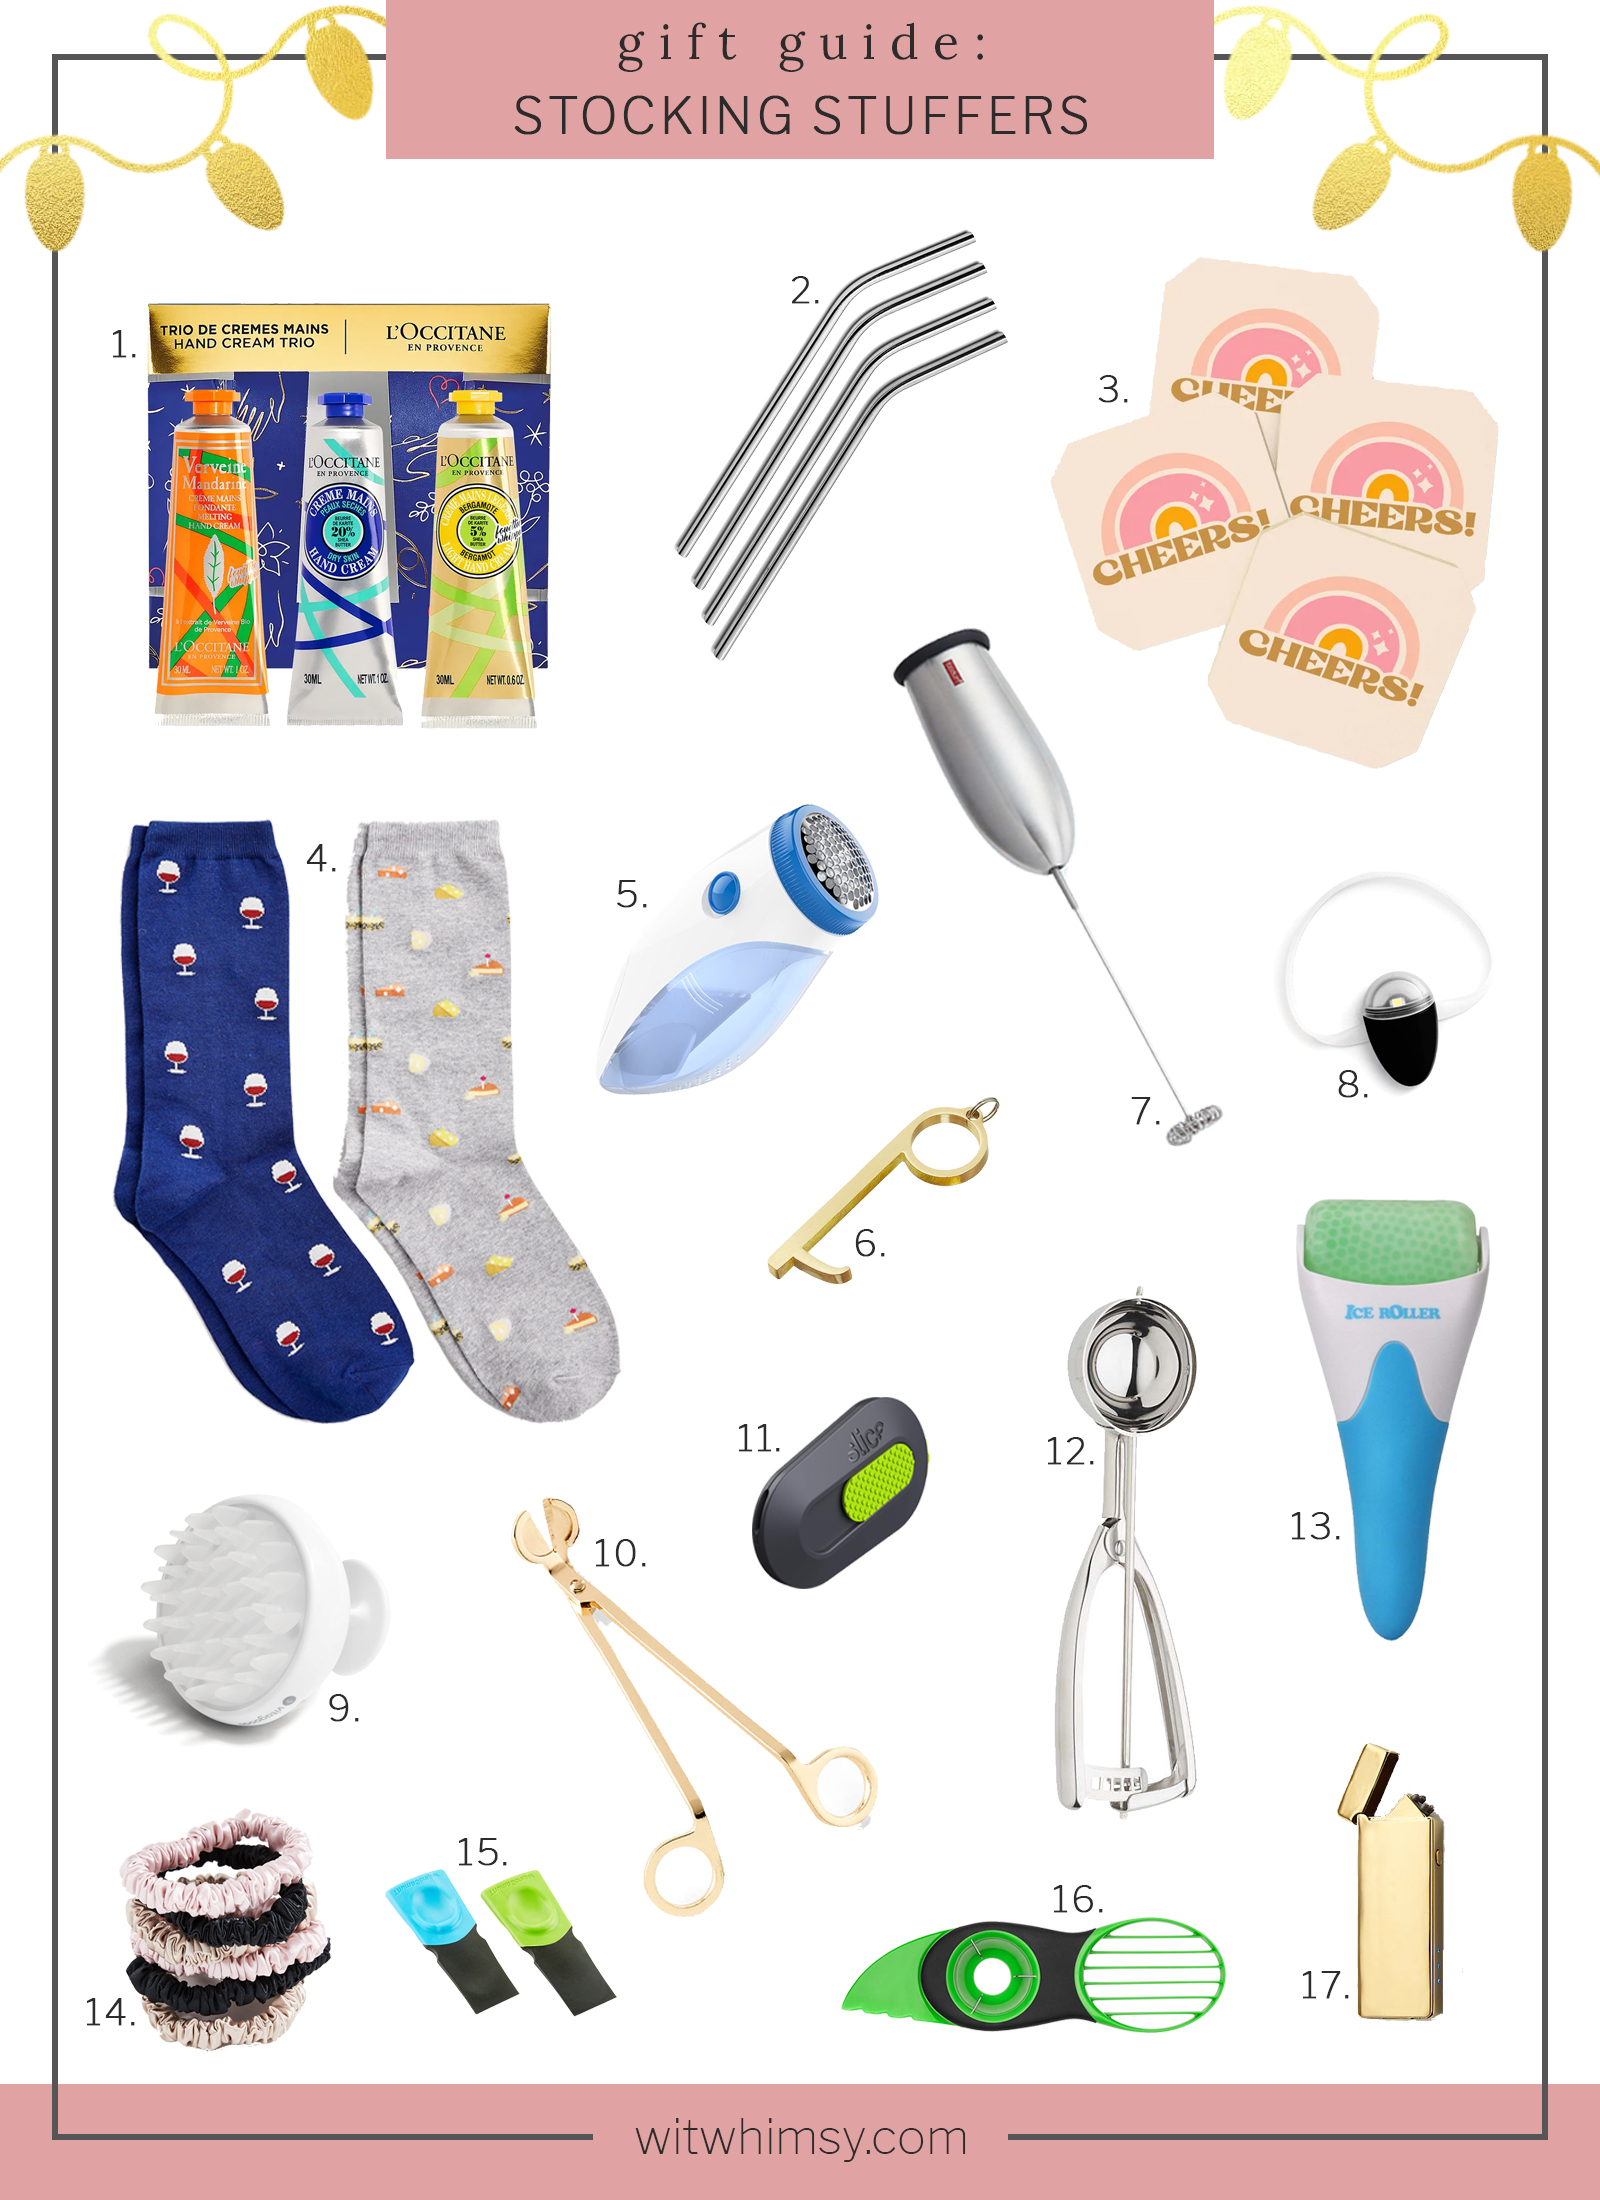 Stocking Stuffers I wit & whimsy